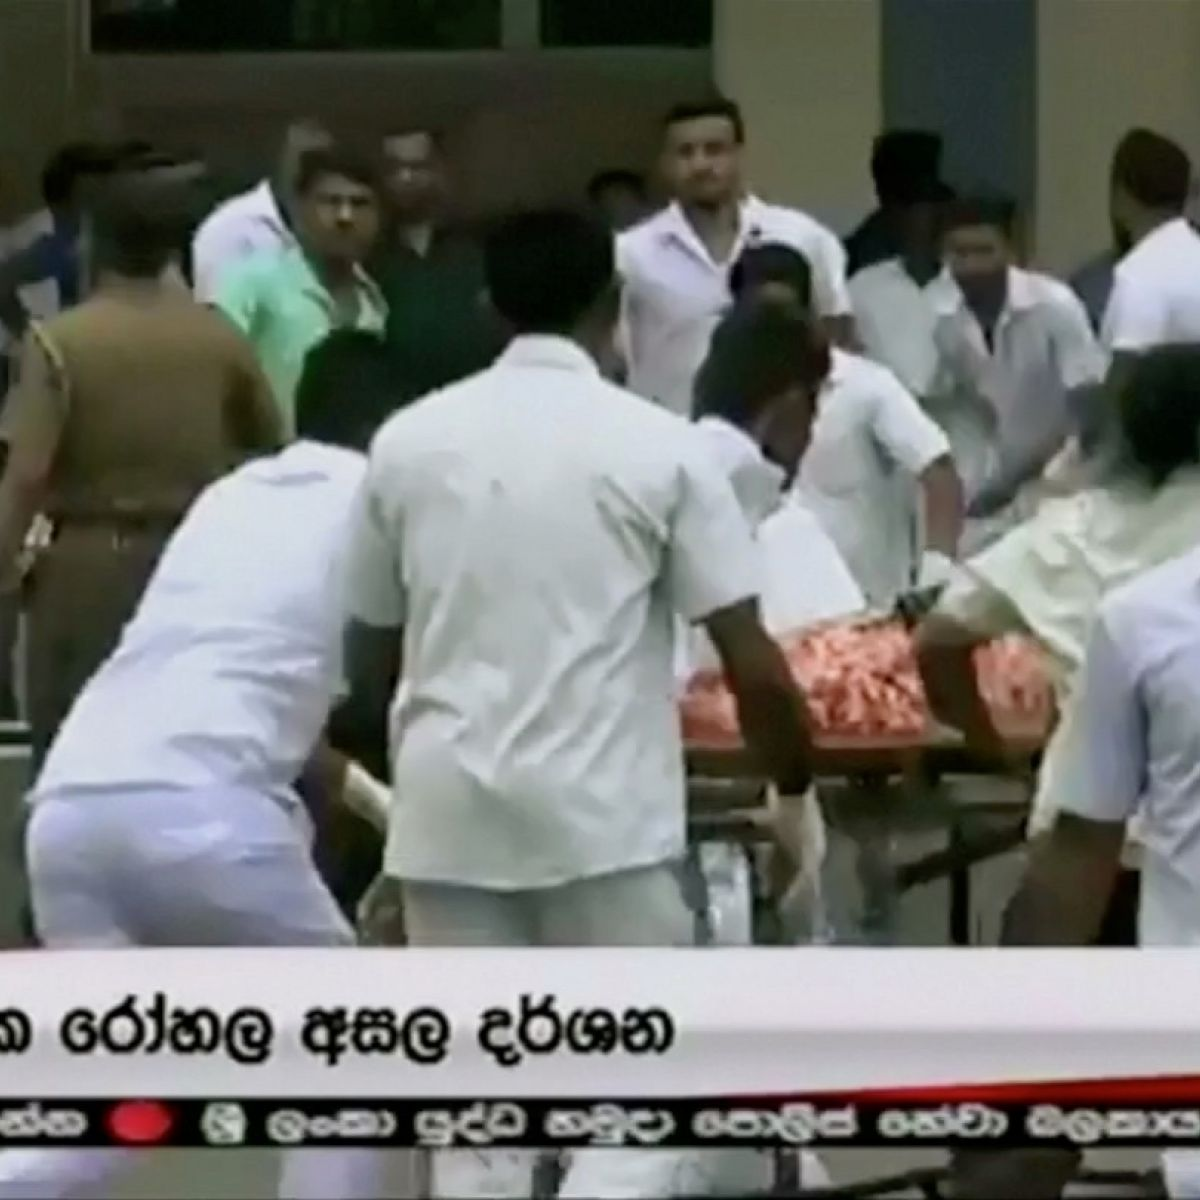 Sri Lanka: At least 207 dead and 450 injured in bombings